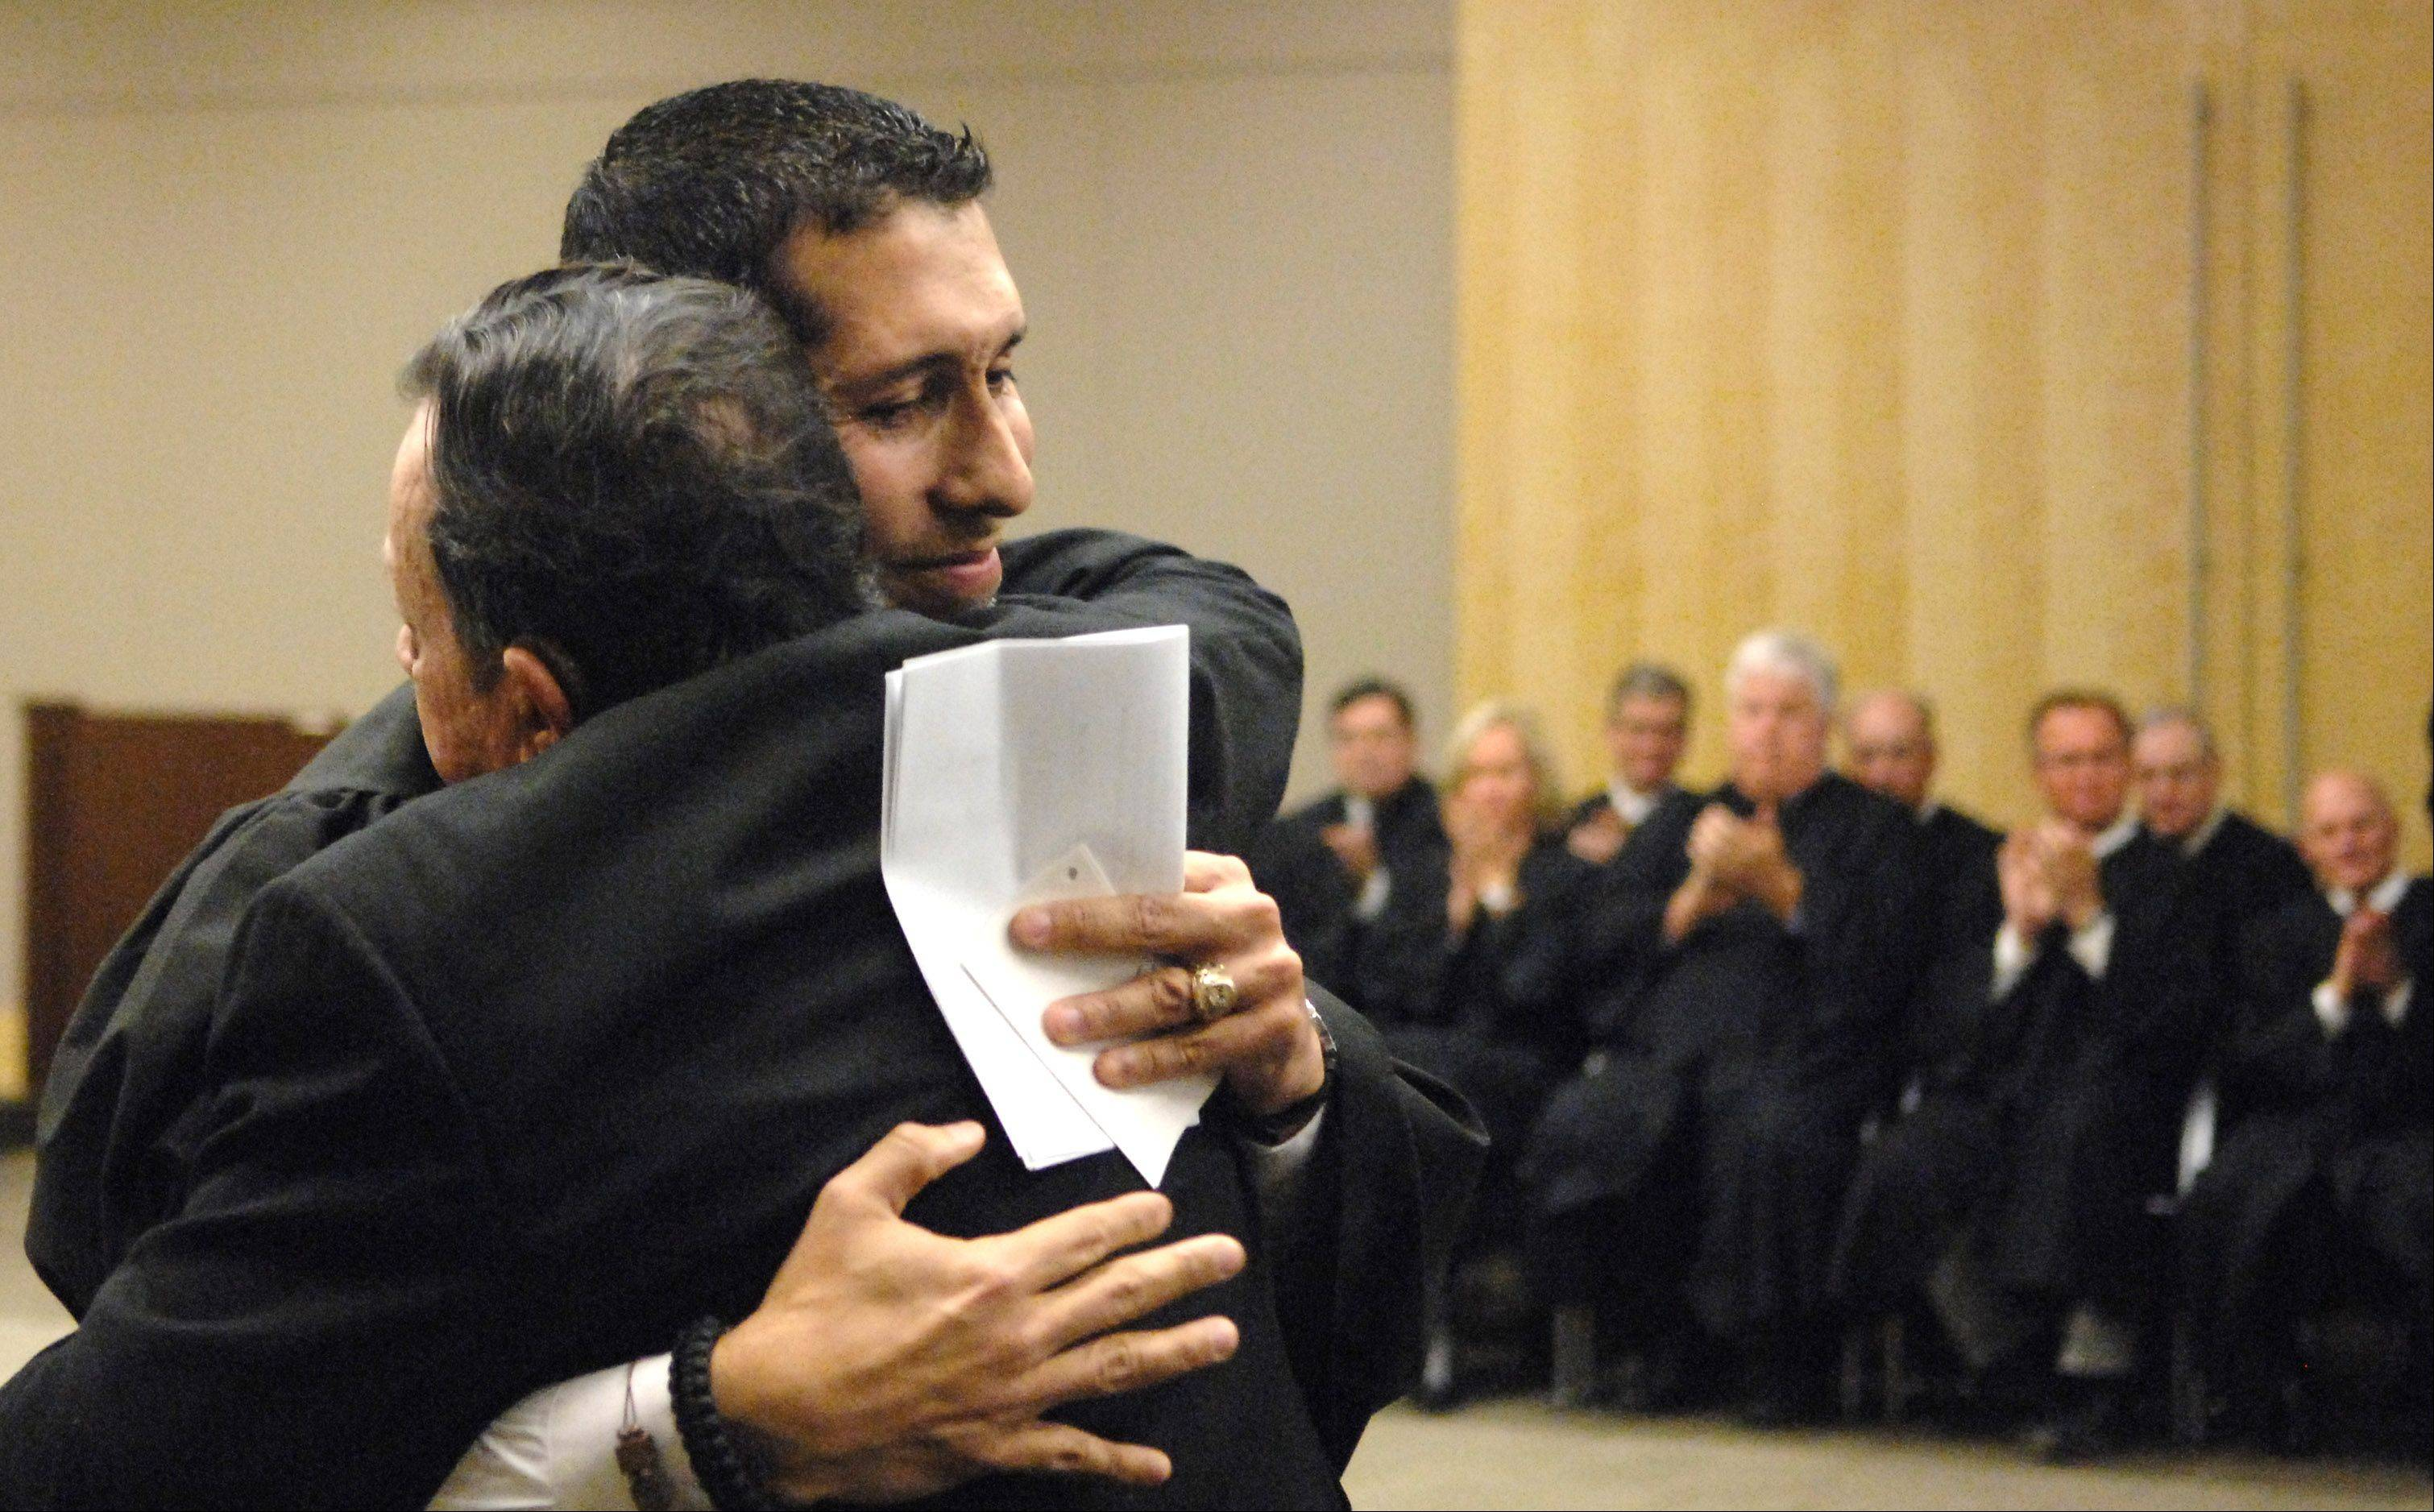 Rene Cruz hugs his father Florencio after being sworn in as Kane County's first Hispanic judge at a ceremony at the Kane County branch court in Geneva.